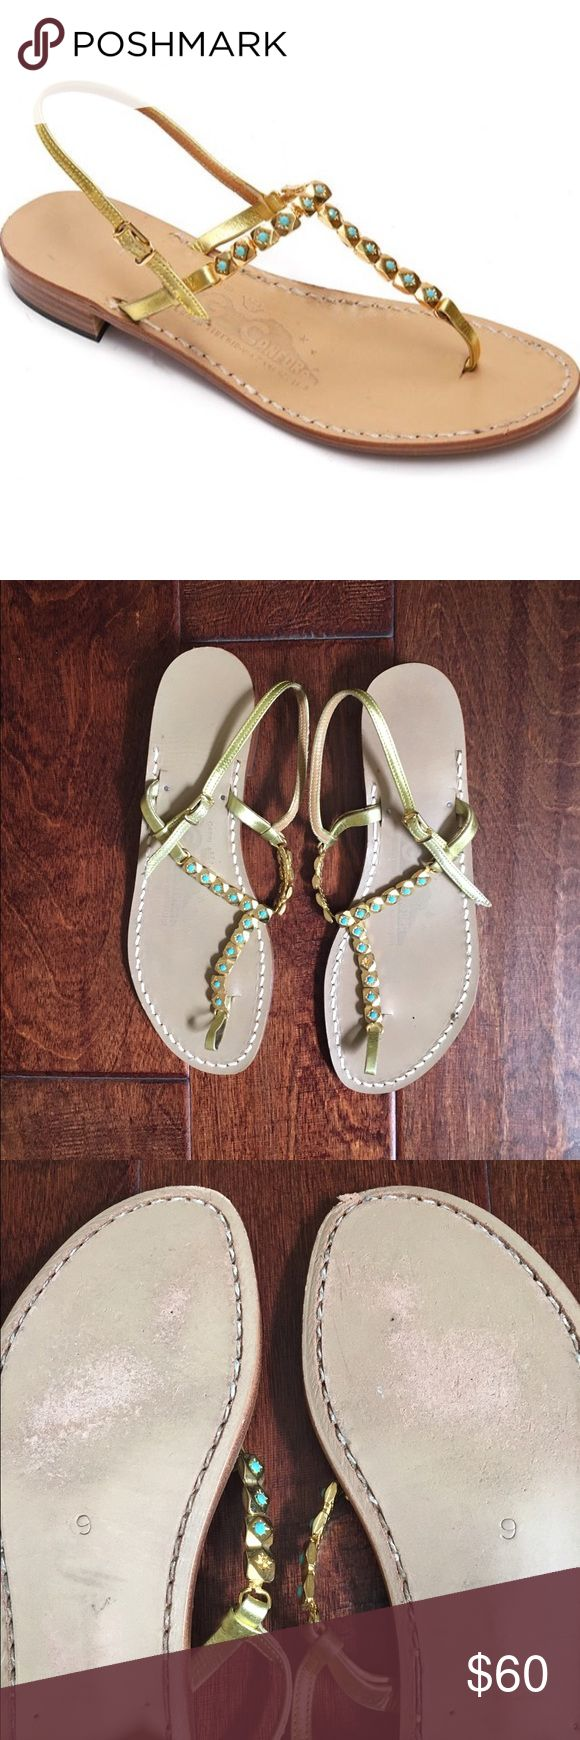 Canfora Capri Masha Sandals Step aside Queen Nefertiti! The unique combination of golden leather and turquoise - colored beads give these modern-day sandals a rich look reminiscent of ancient Egypt. Non slip rubber heel guard. Hand stitched leather sole. Italian -made beads. Gold strap in calf leather. As you can see in the photos the sole has some flaws, scratches. Open to Offers. canfora Shoes Sandals